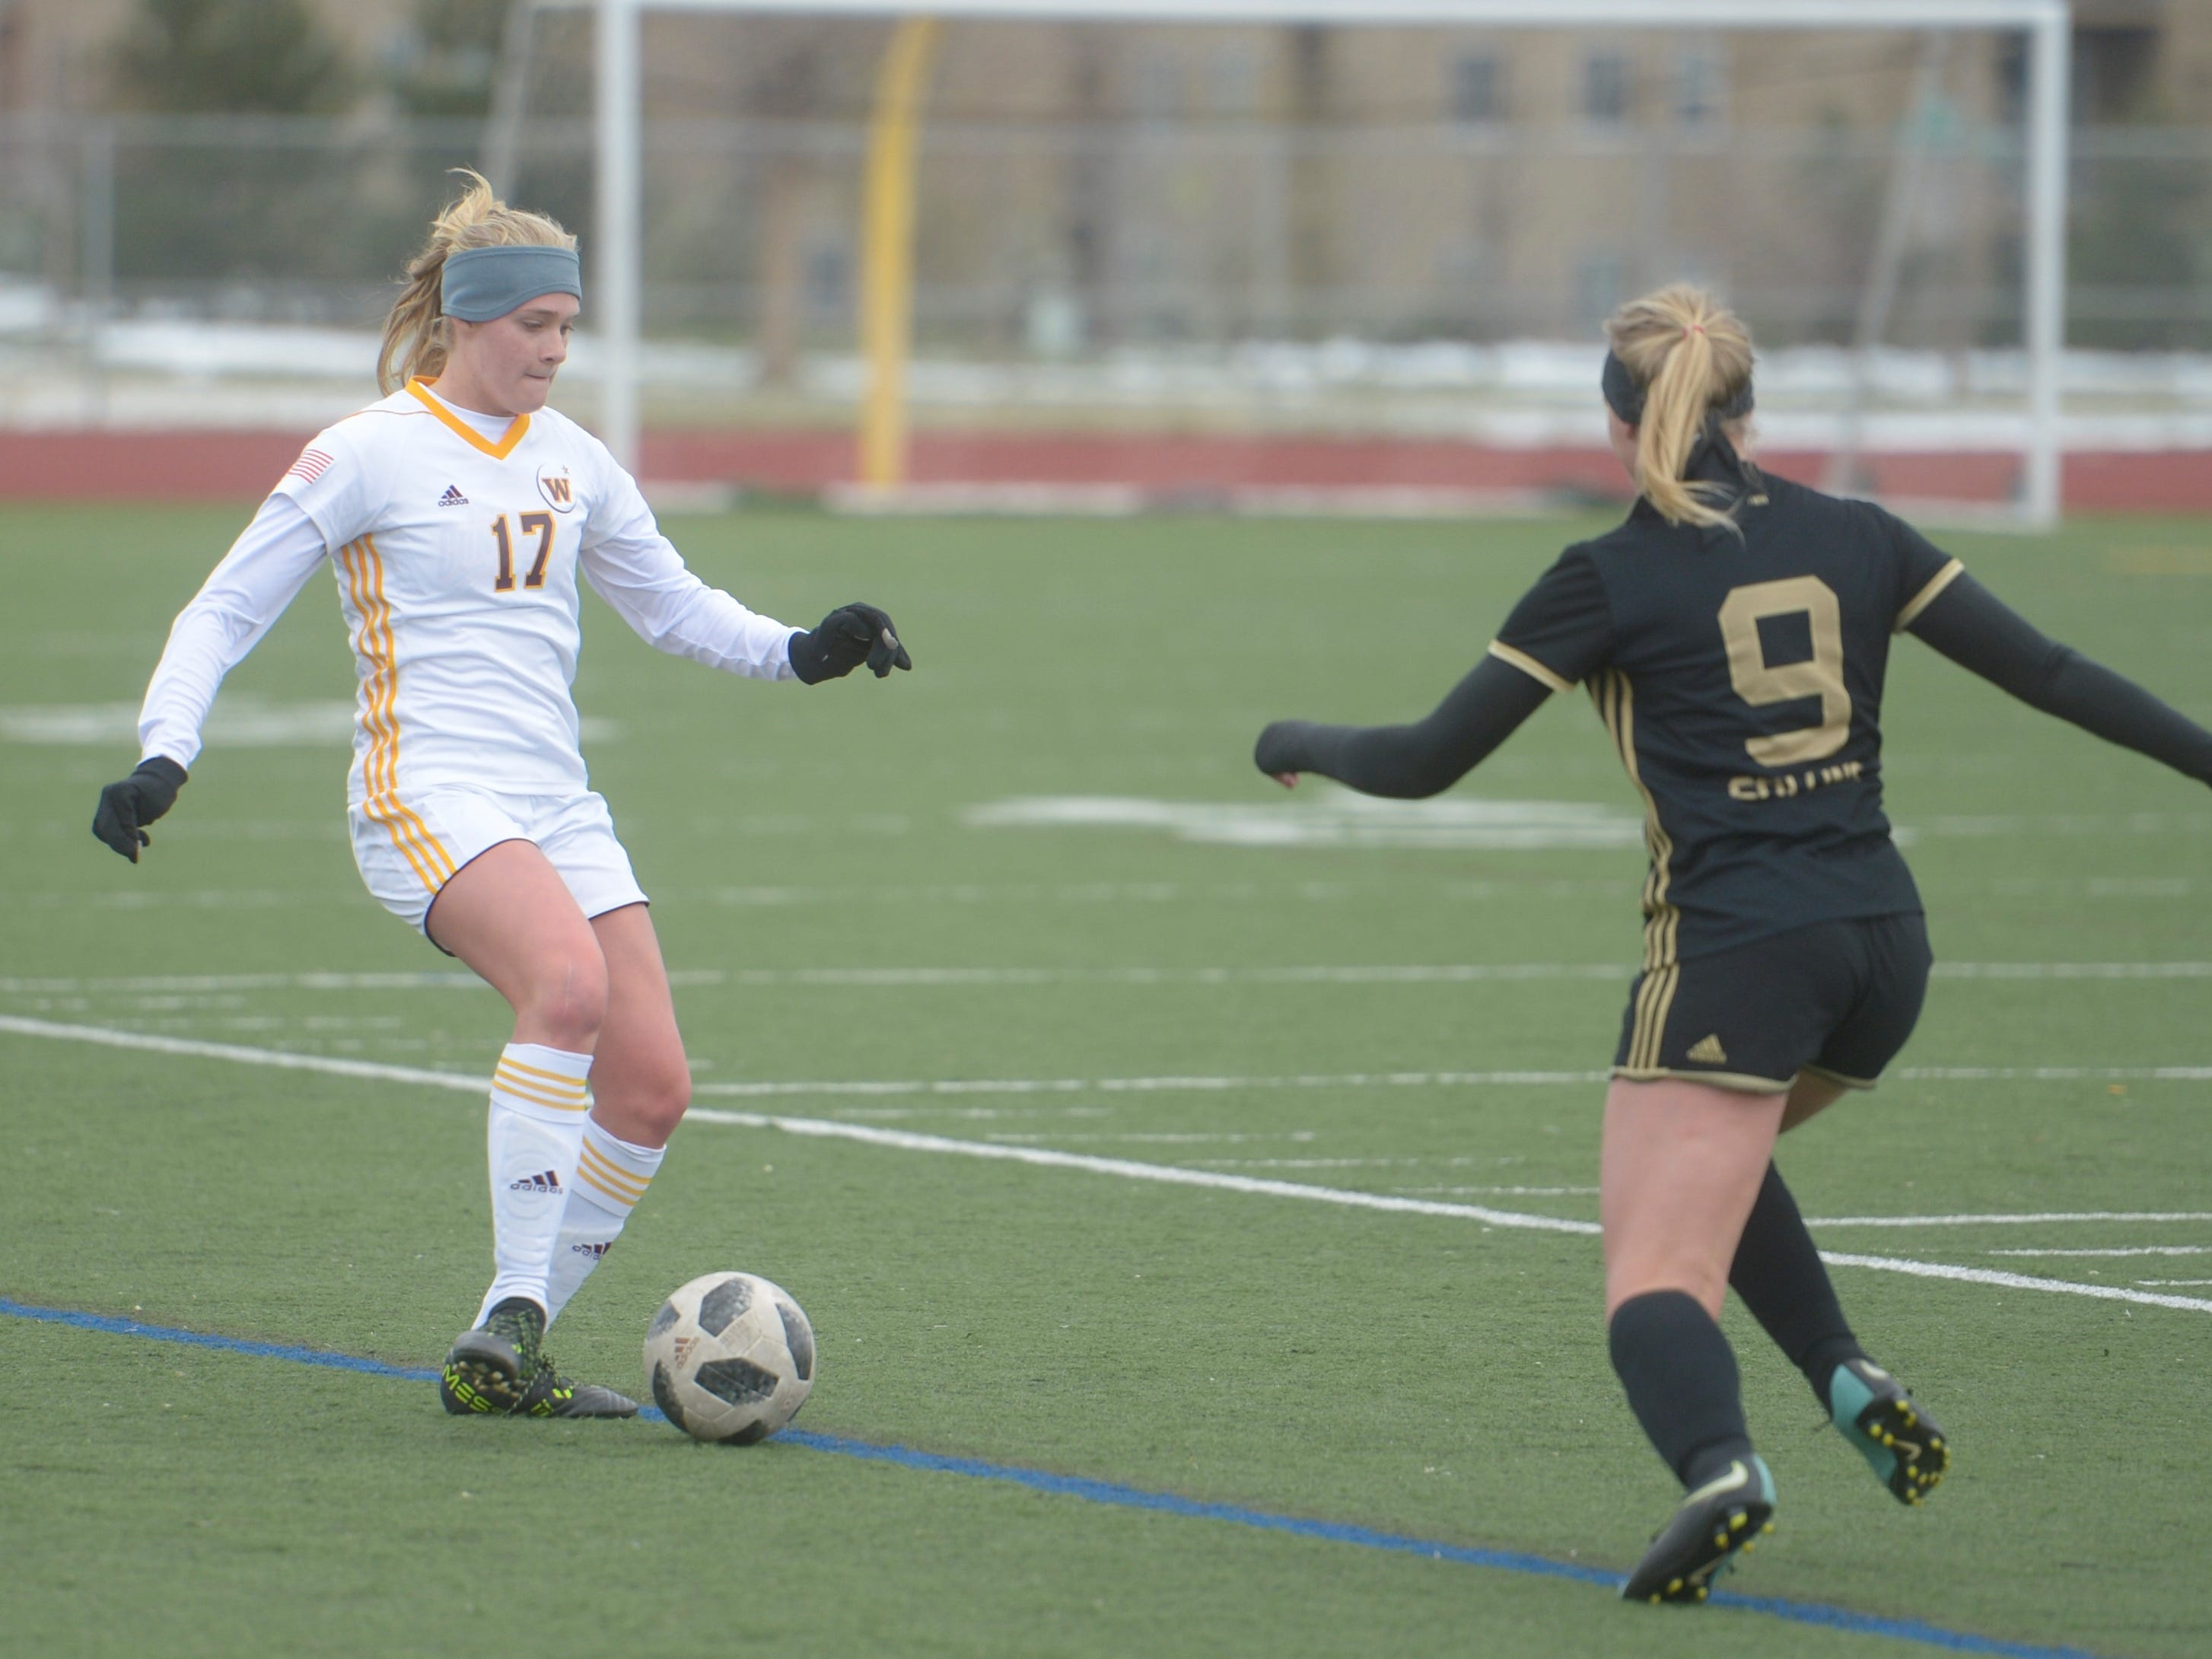 Windsor soccer player Kyndel Anderson passes the ball during a game Saturday, April 13, 2019 at Fossil Ridge. Windsor won 3-0.